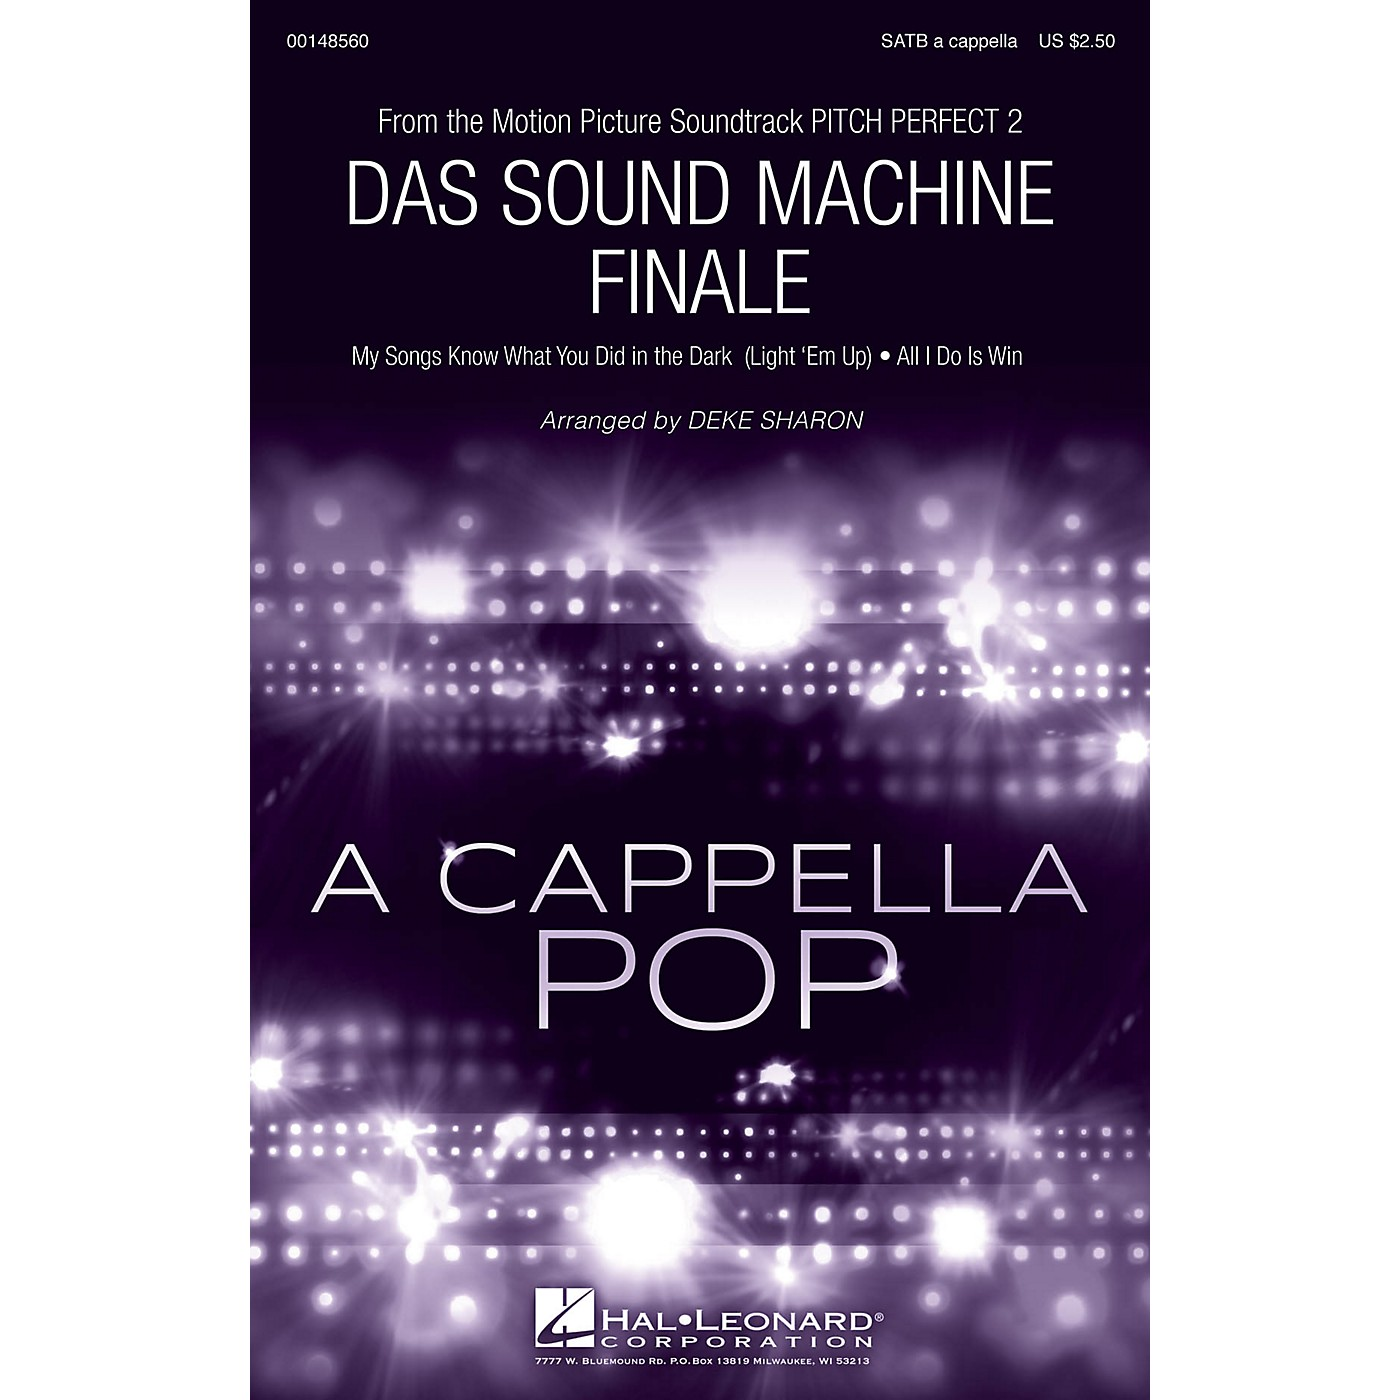 Hal Leonard Das Sound Machine Finale (from Pitch Perfect 2) SATB a cappella arranged by Deke Sharon thumbnail